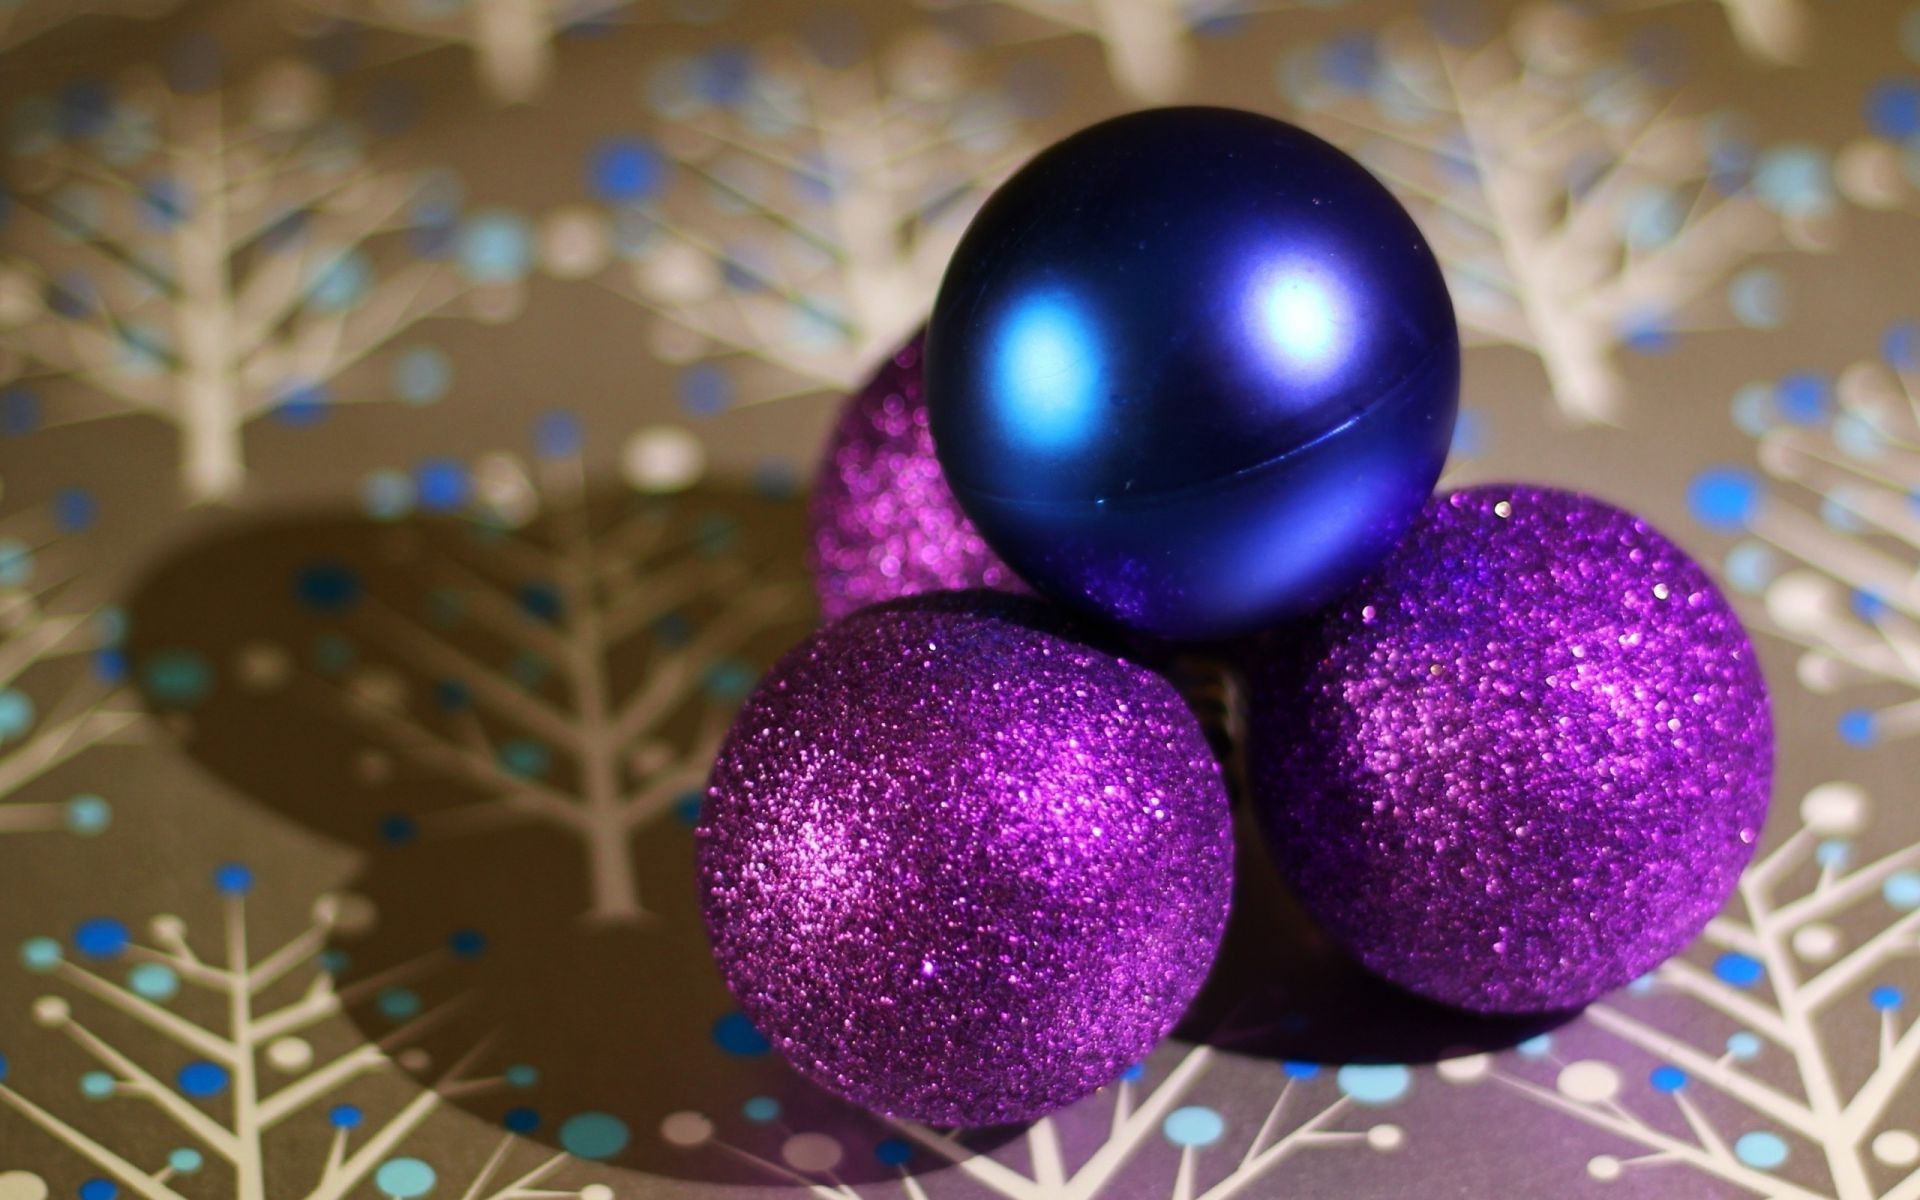 christmas color new year wallpaper holiday new year happy iphone wallpapers for free